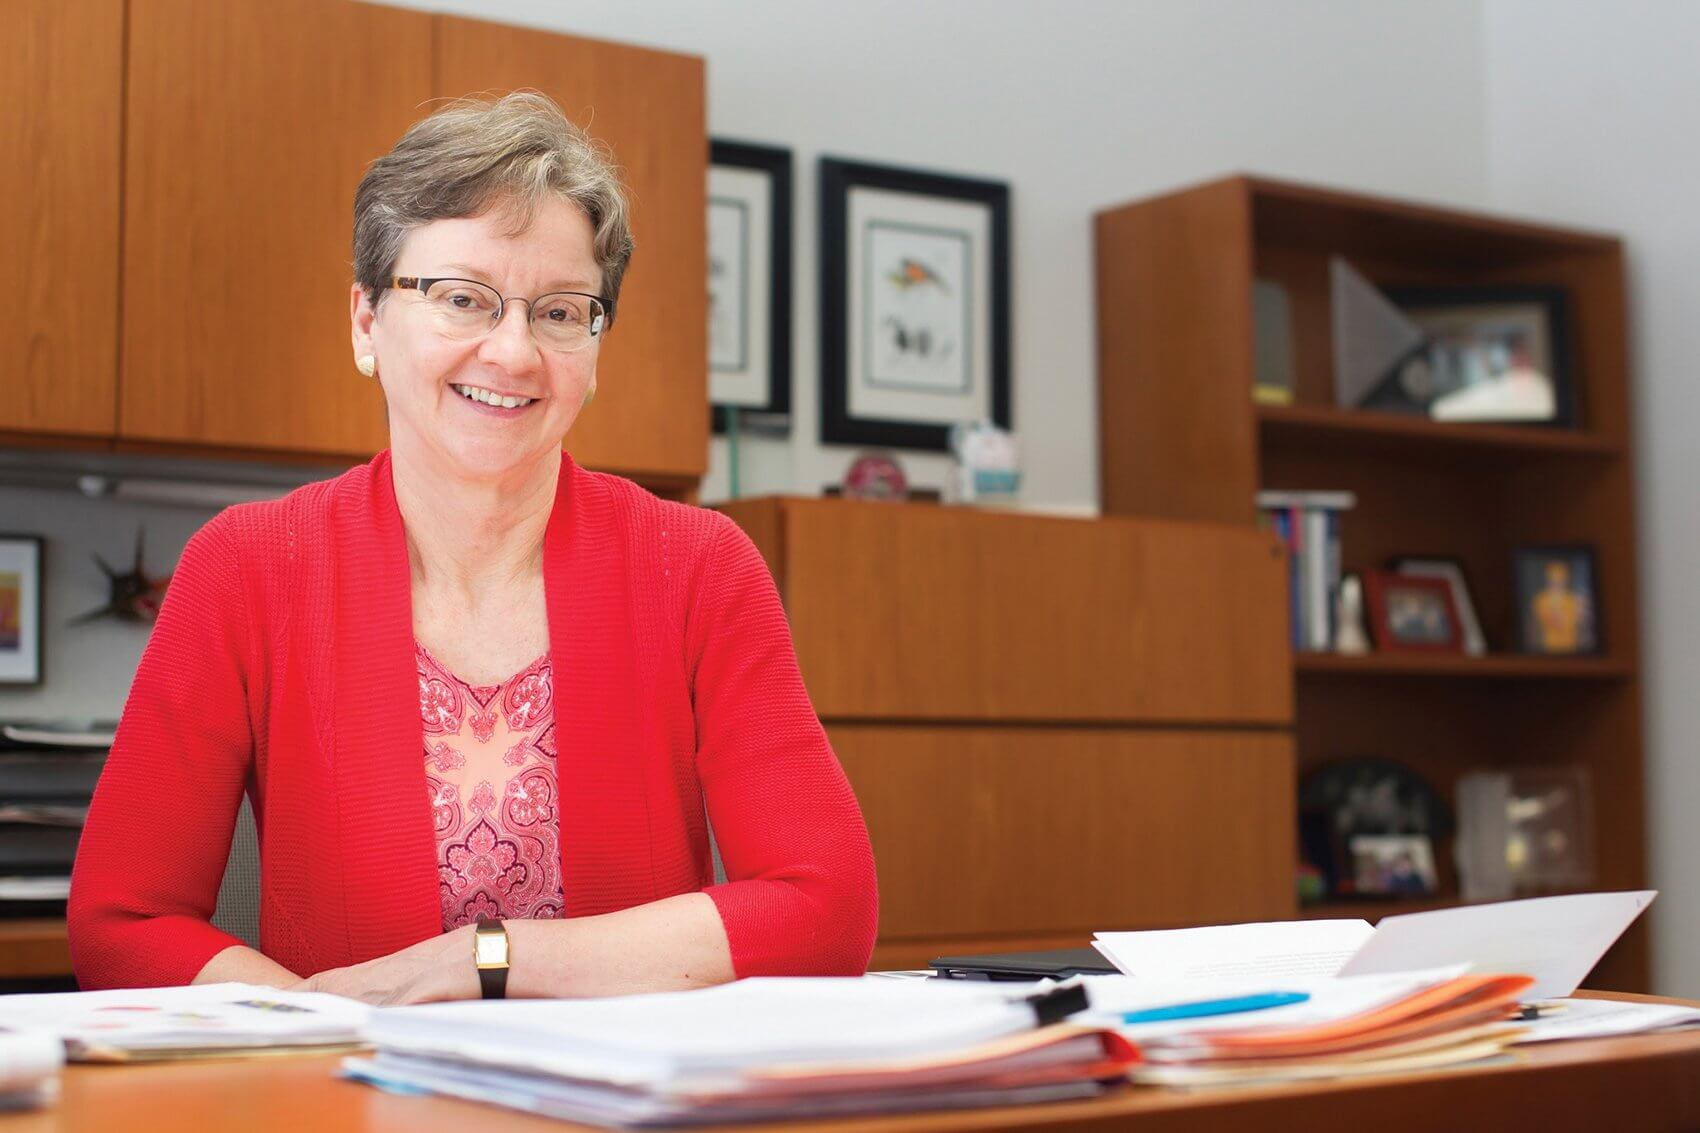 Michelle C. Barton, Ph.D., professor in the department of epigenetics and molecular carcinogenesis at MD Anderson Cancer Center